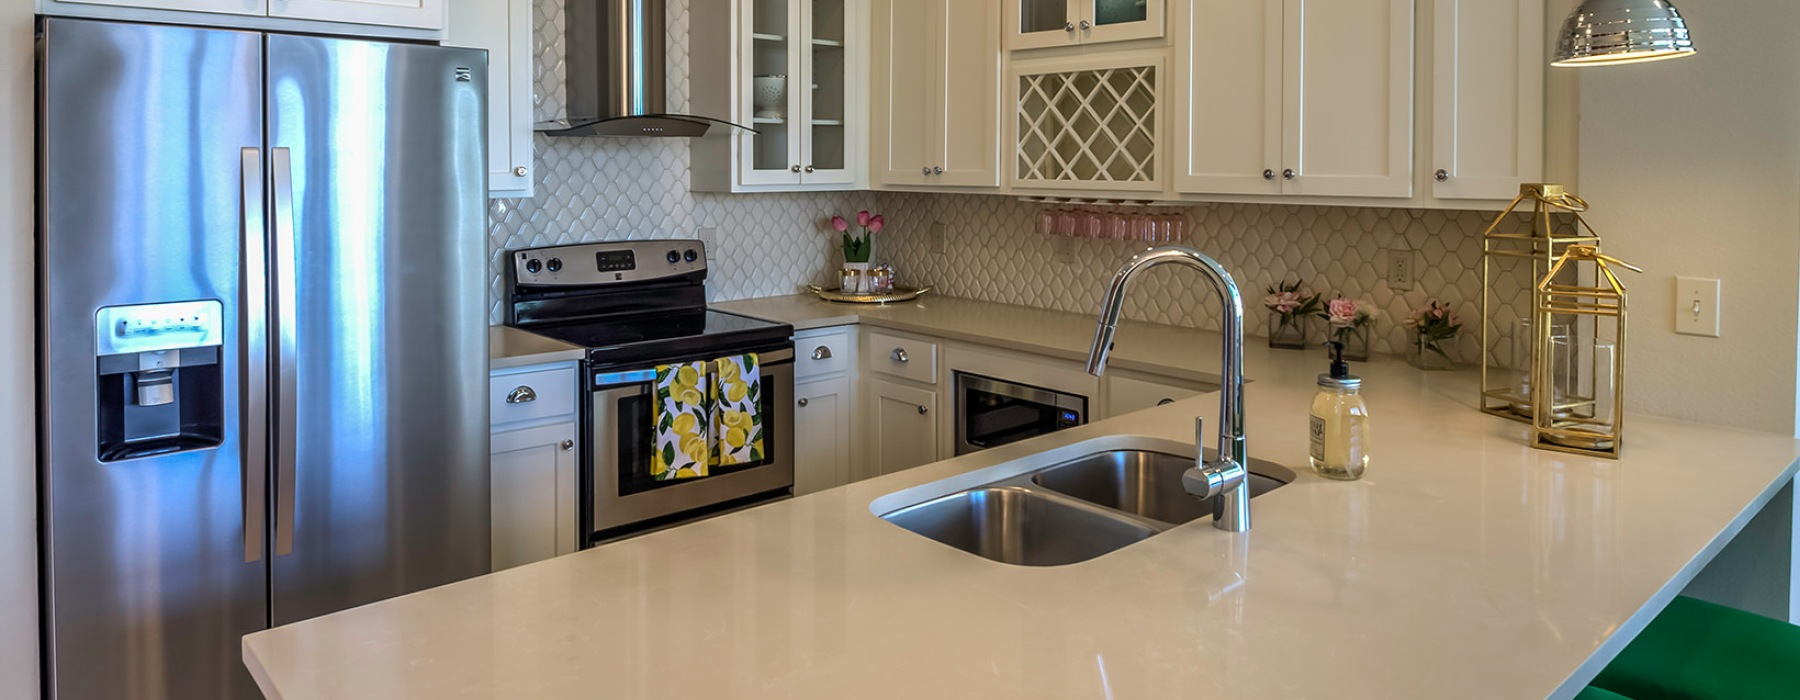 Kitchen with pendent lighting and peninsula with sink.